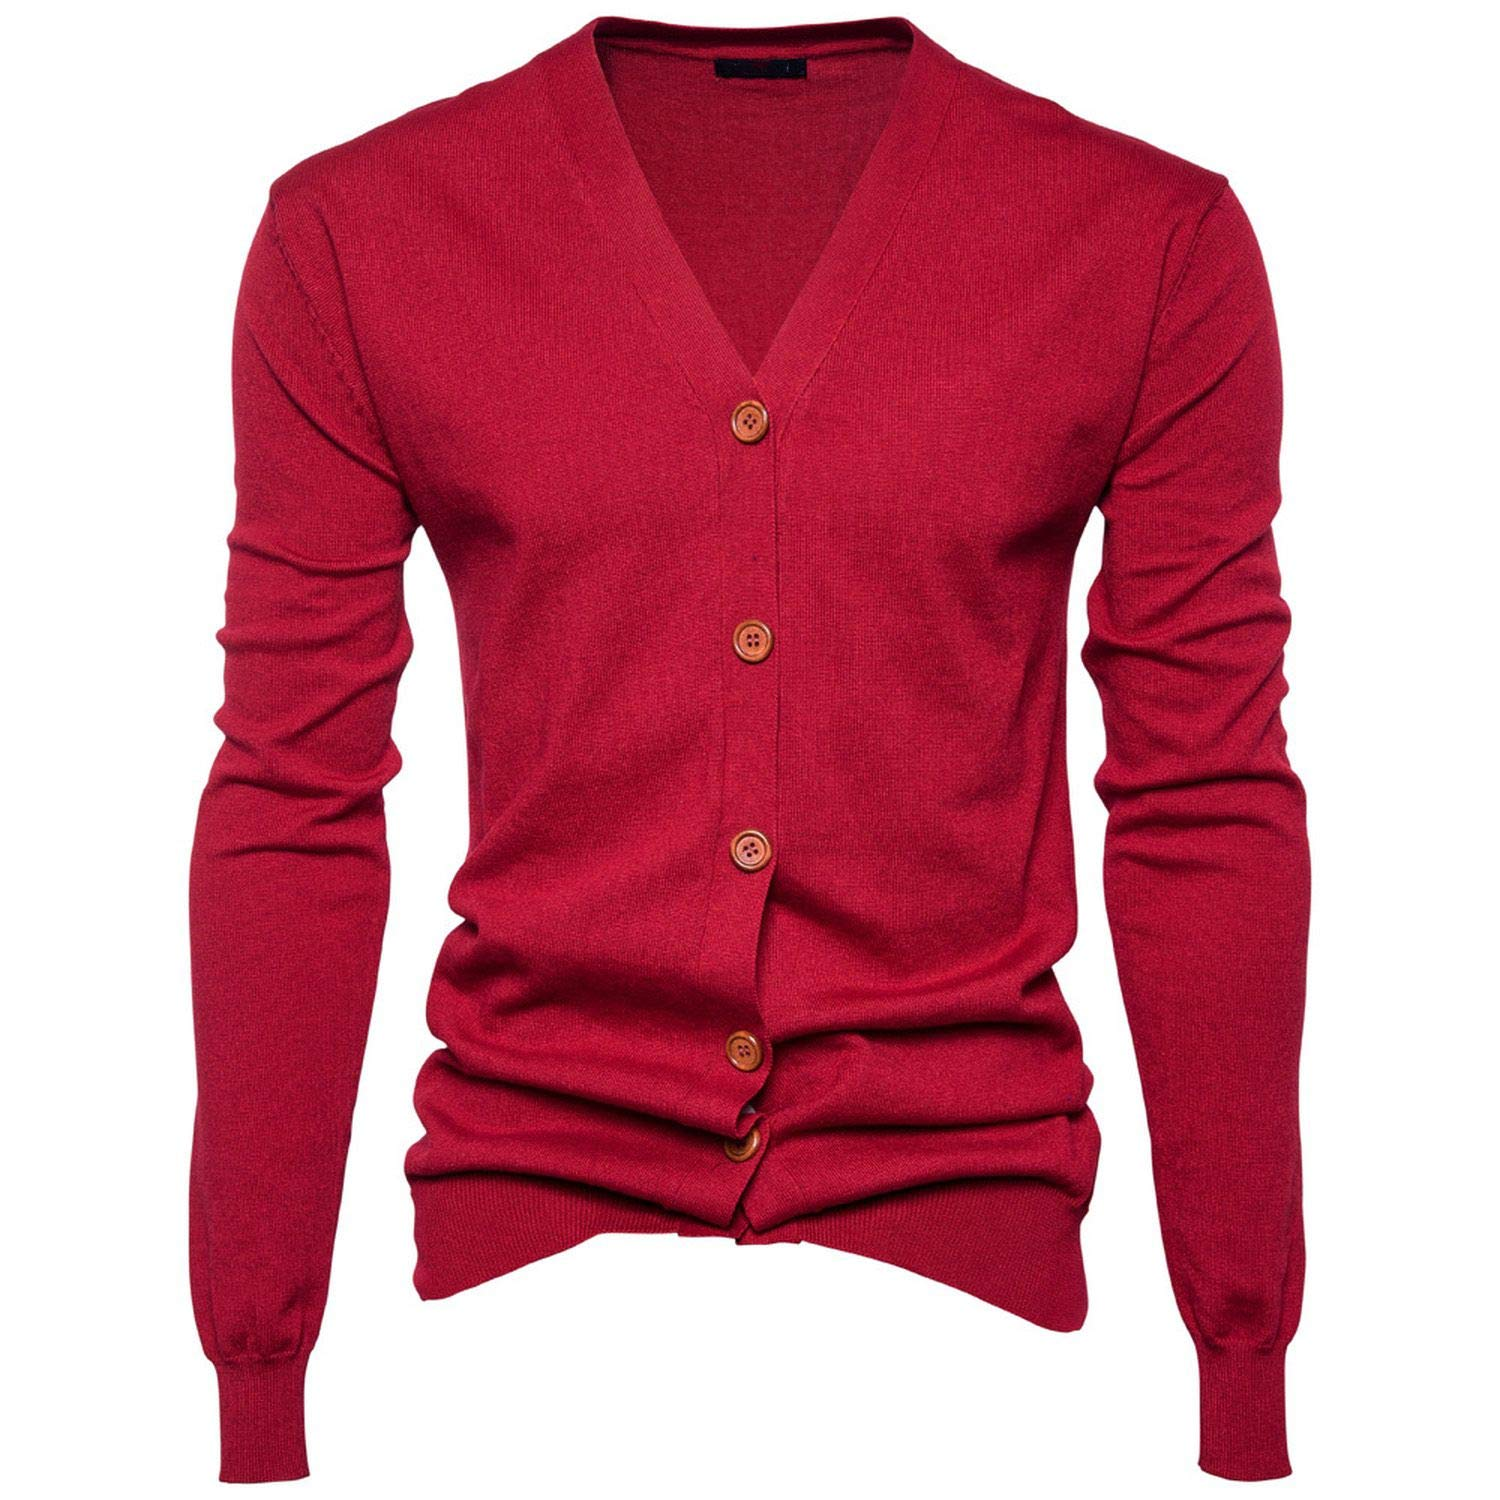 Men Sweater Casual Button V-Neck Sweaters Long Sleeve Cotton Knit Cardigan Slim Fit Pull Homme Multicolor